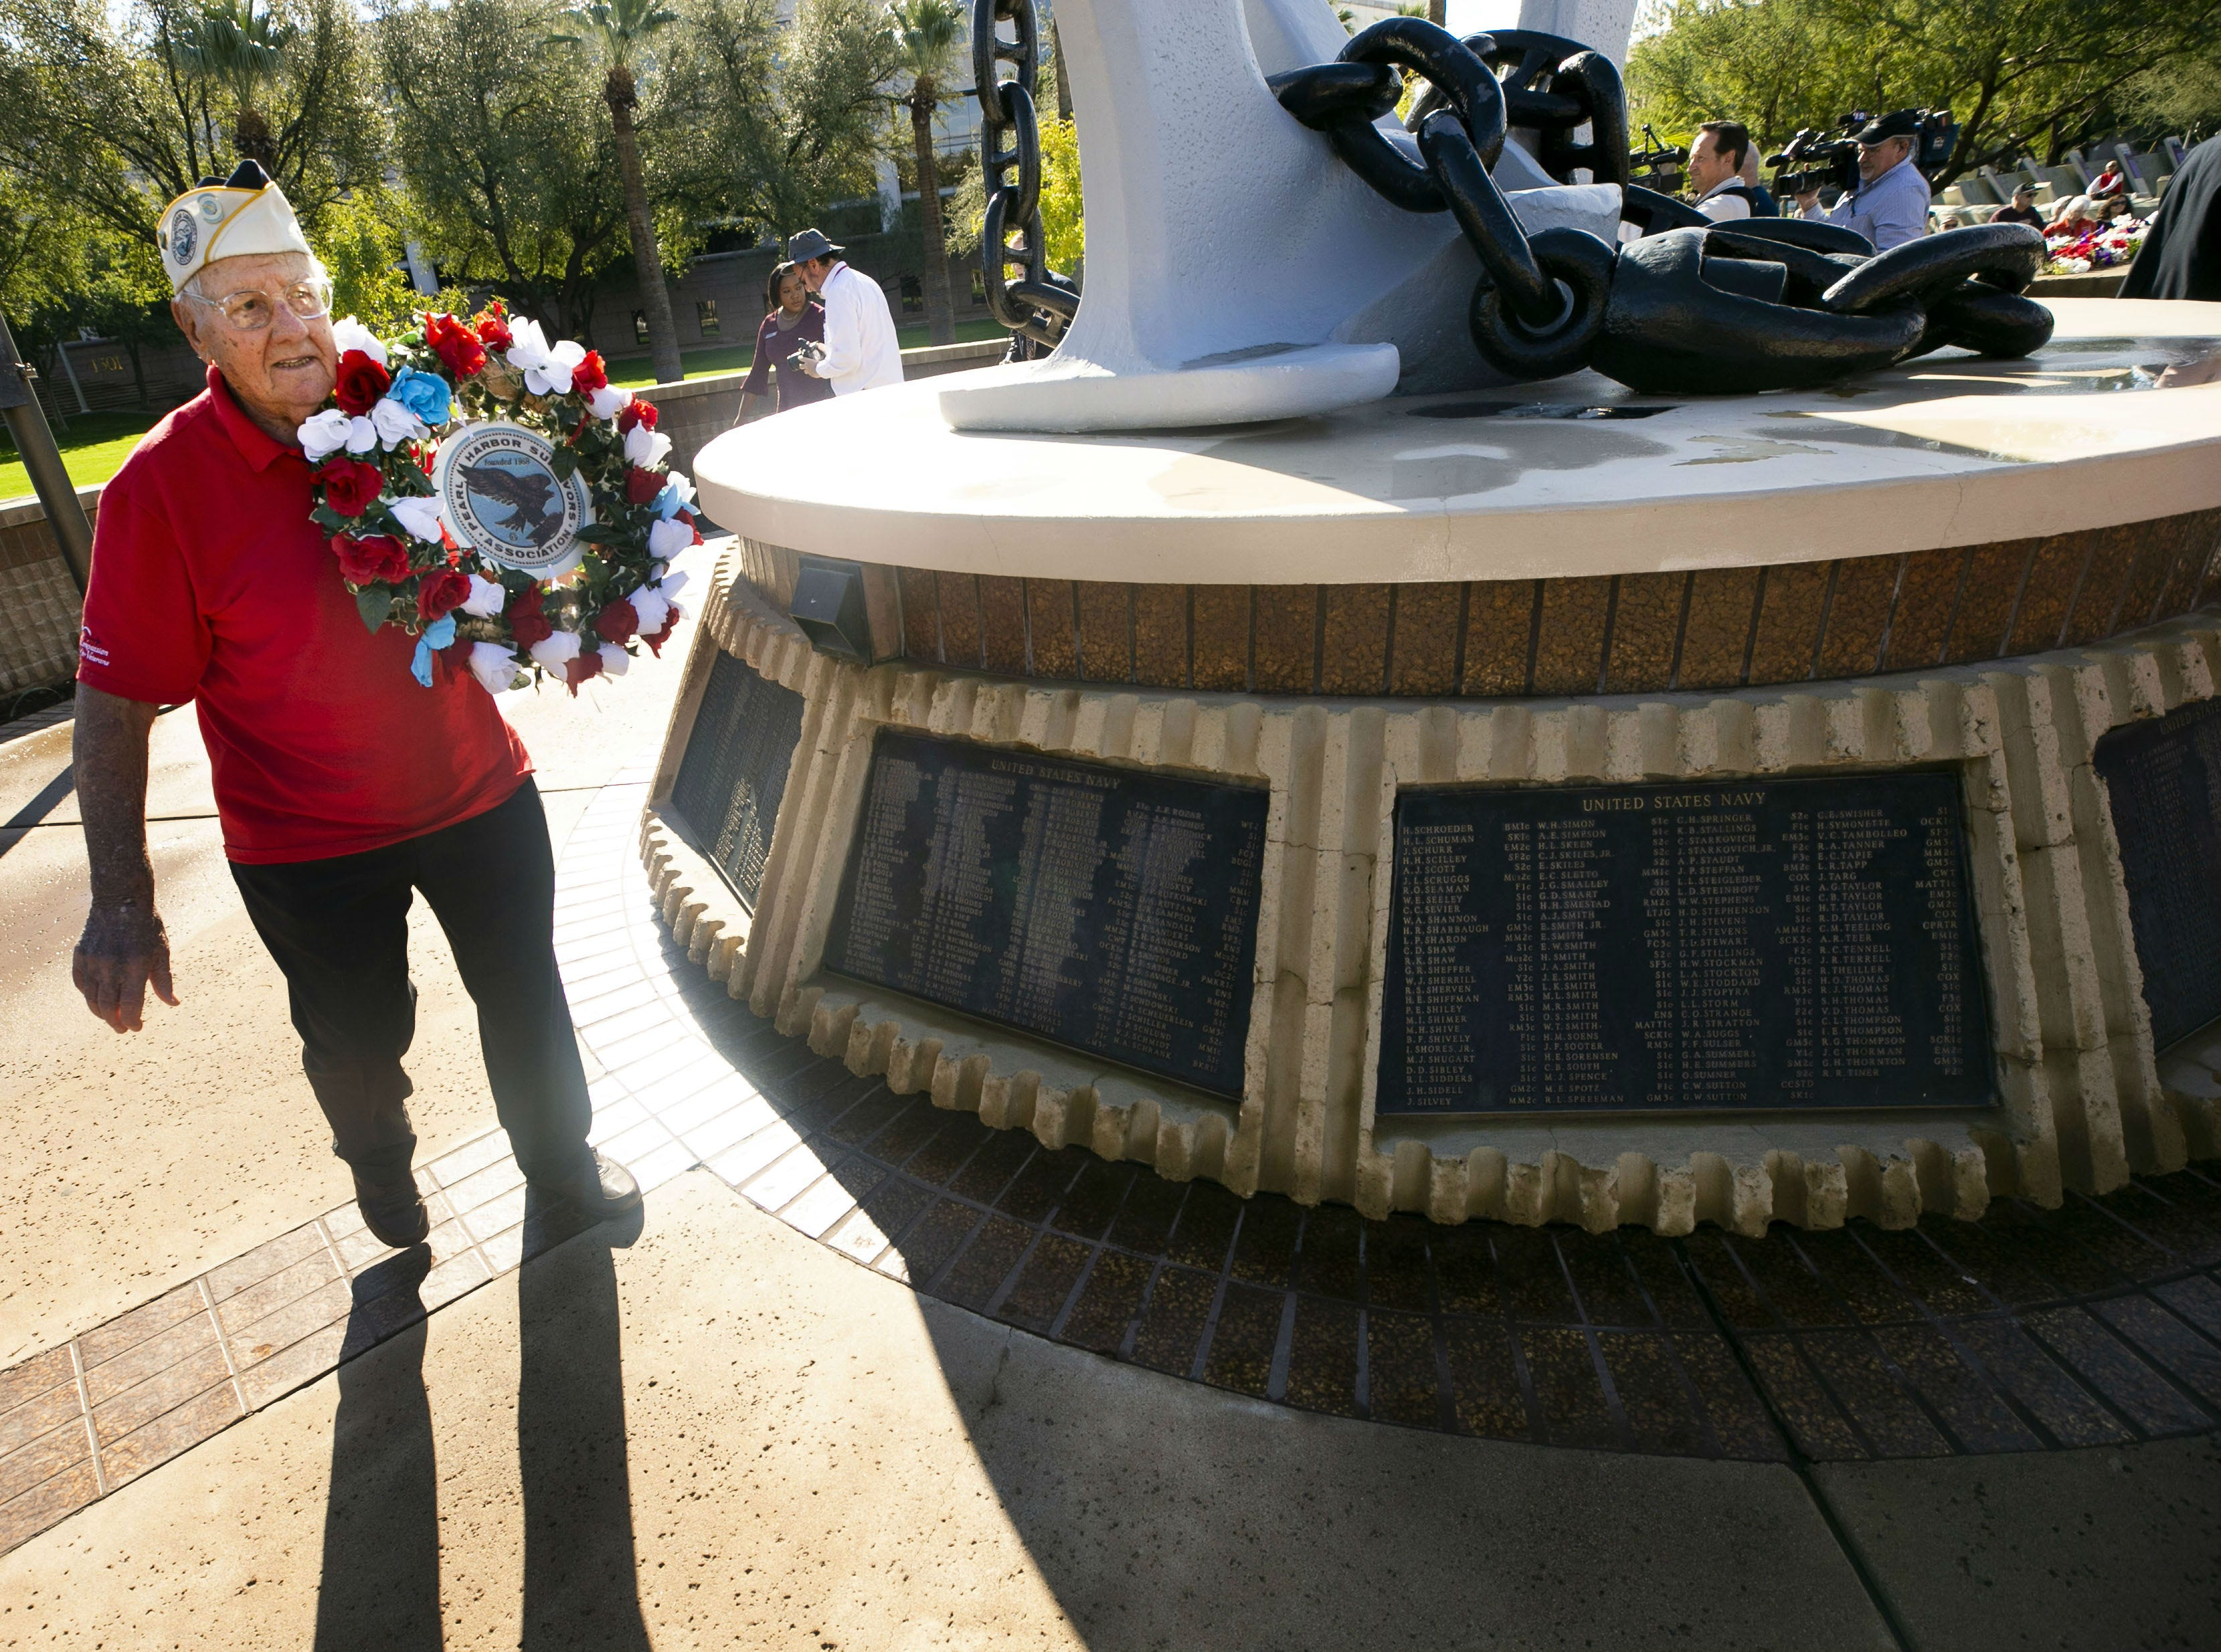 Pearl Harbor survivor Edward Miklavcic, a Phoenix veteran of the then-U.S. Army Air Forces, places a memorial wreath during a Pearl Harbor Remembrance Day event at Wesley Bolin Plaza in Phoenix on Dec. 7, 2018, the 77th anniversary of the attack on Pearl Harbor.